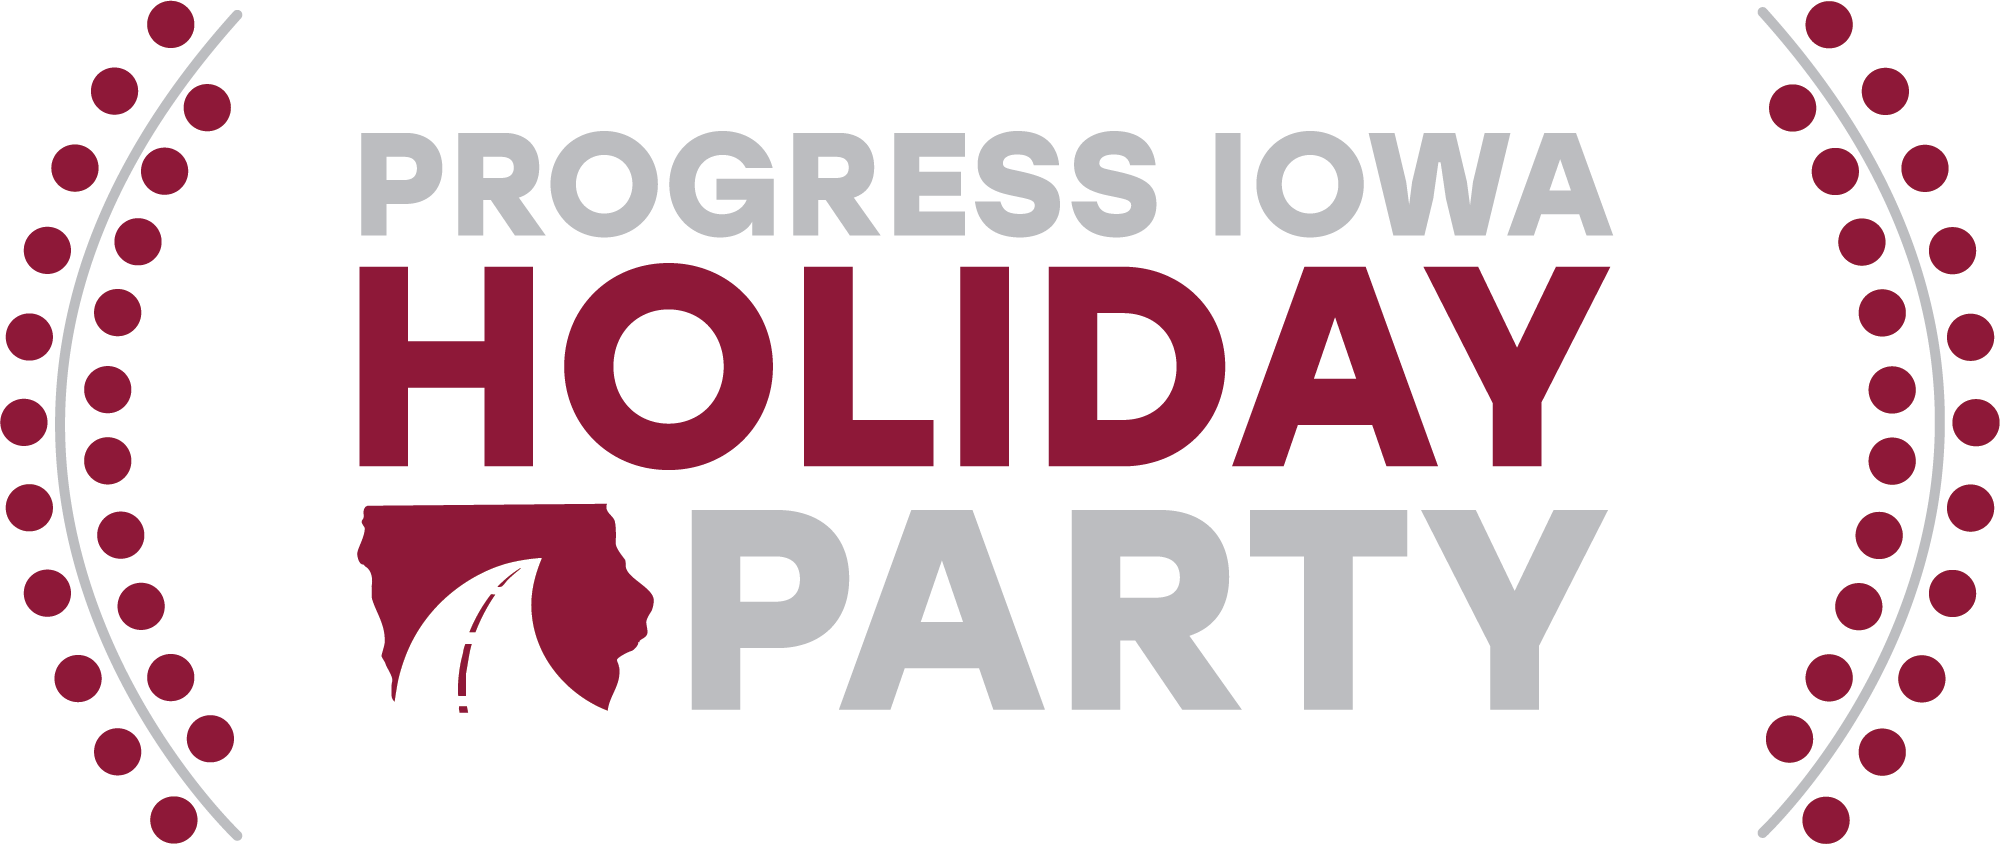 Progress Iowa